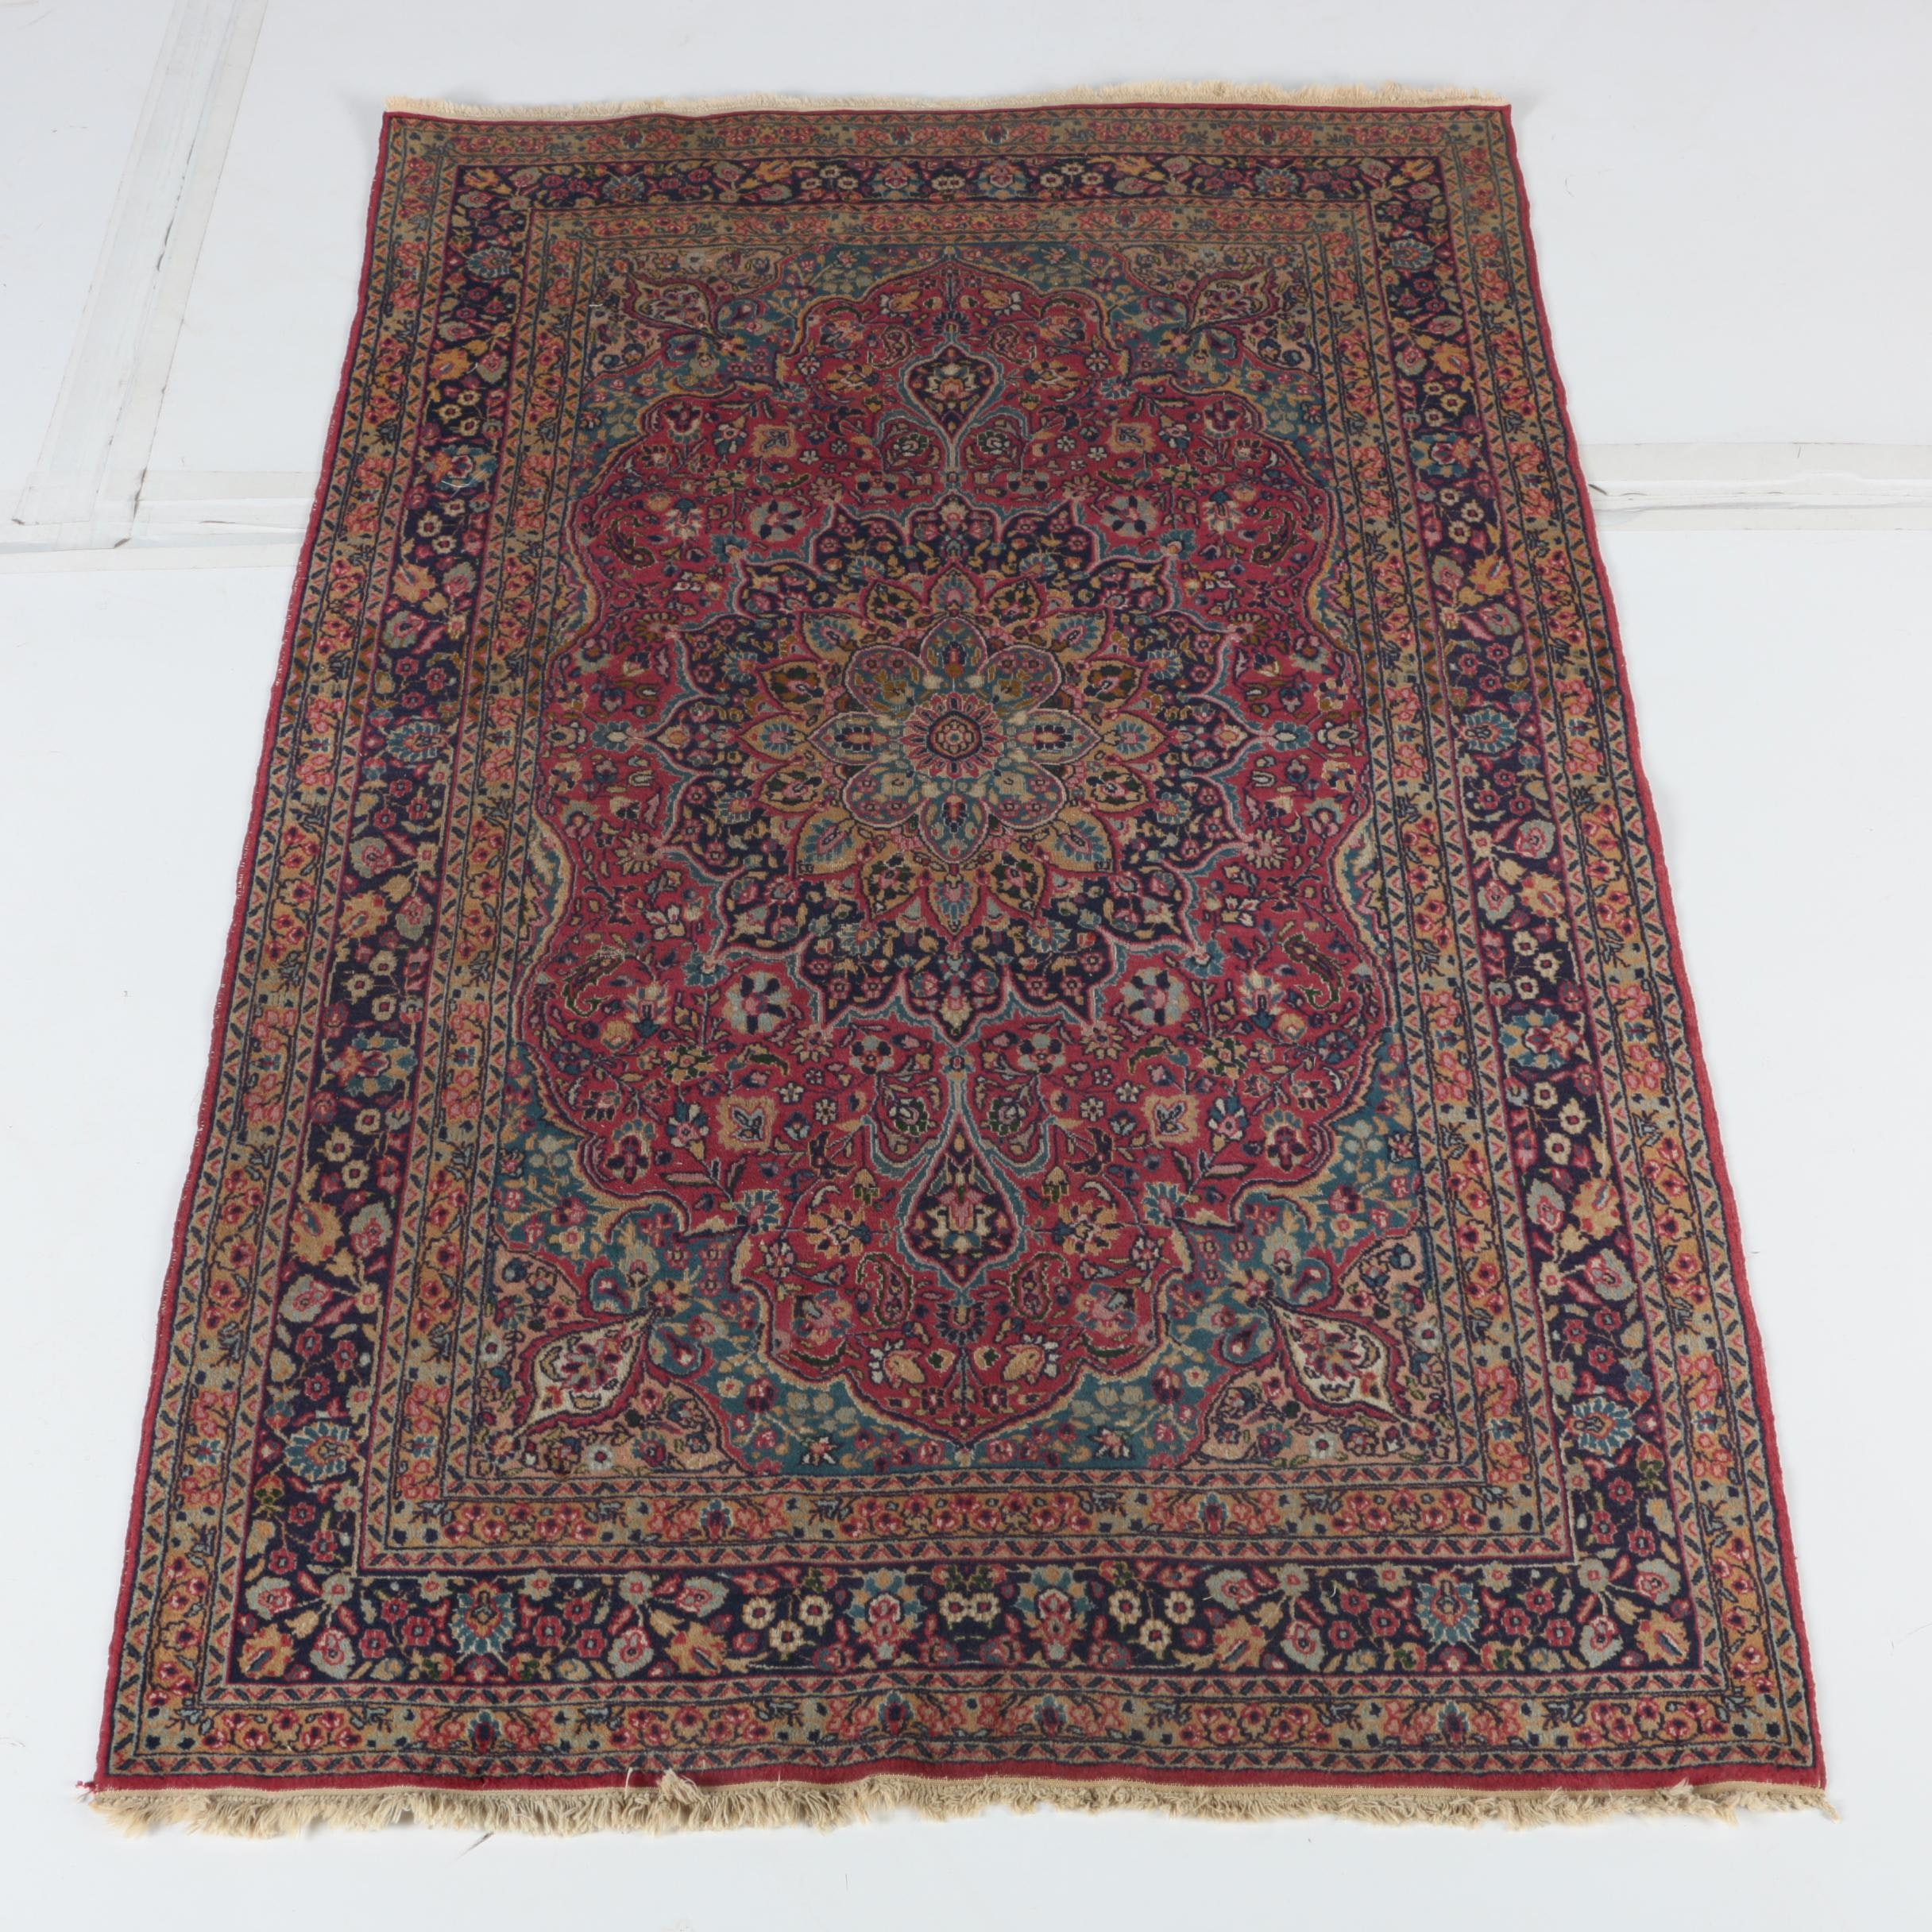 Finely Hand-Knotted Persian Tabriz Wool Area Rug